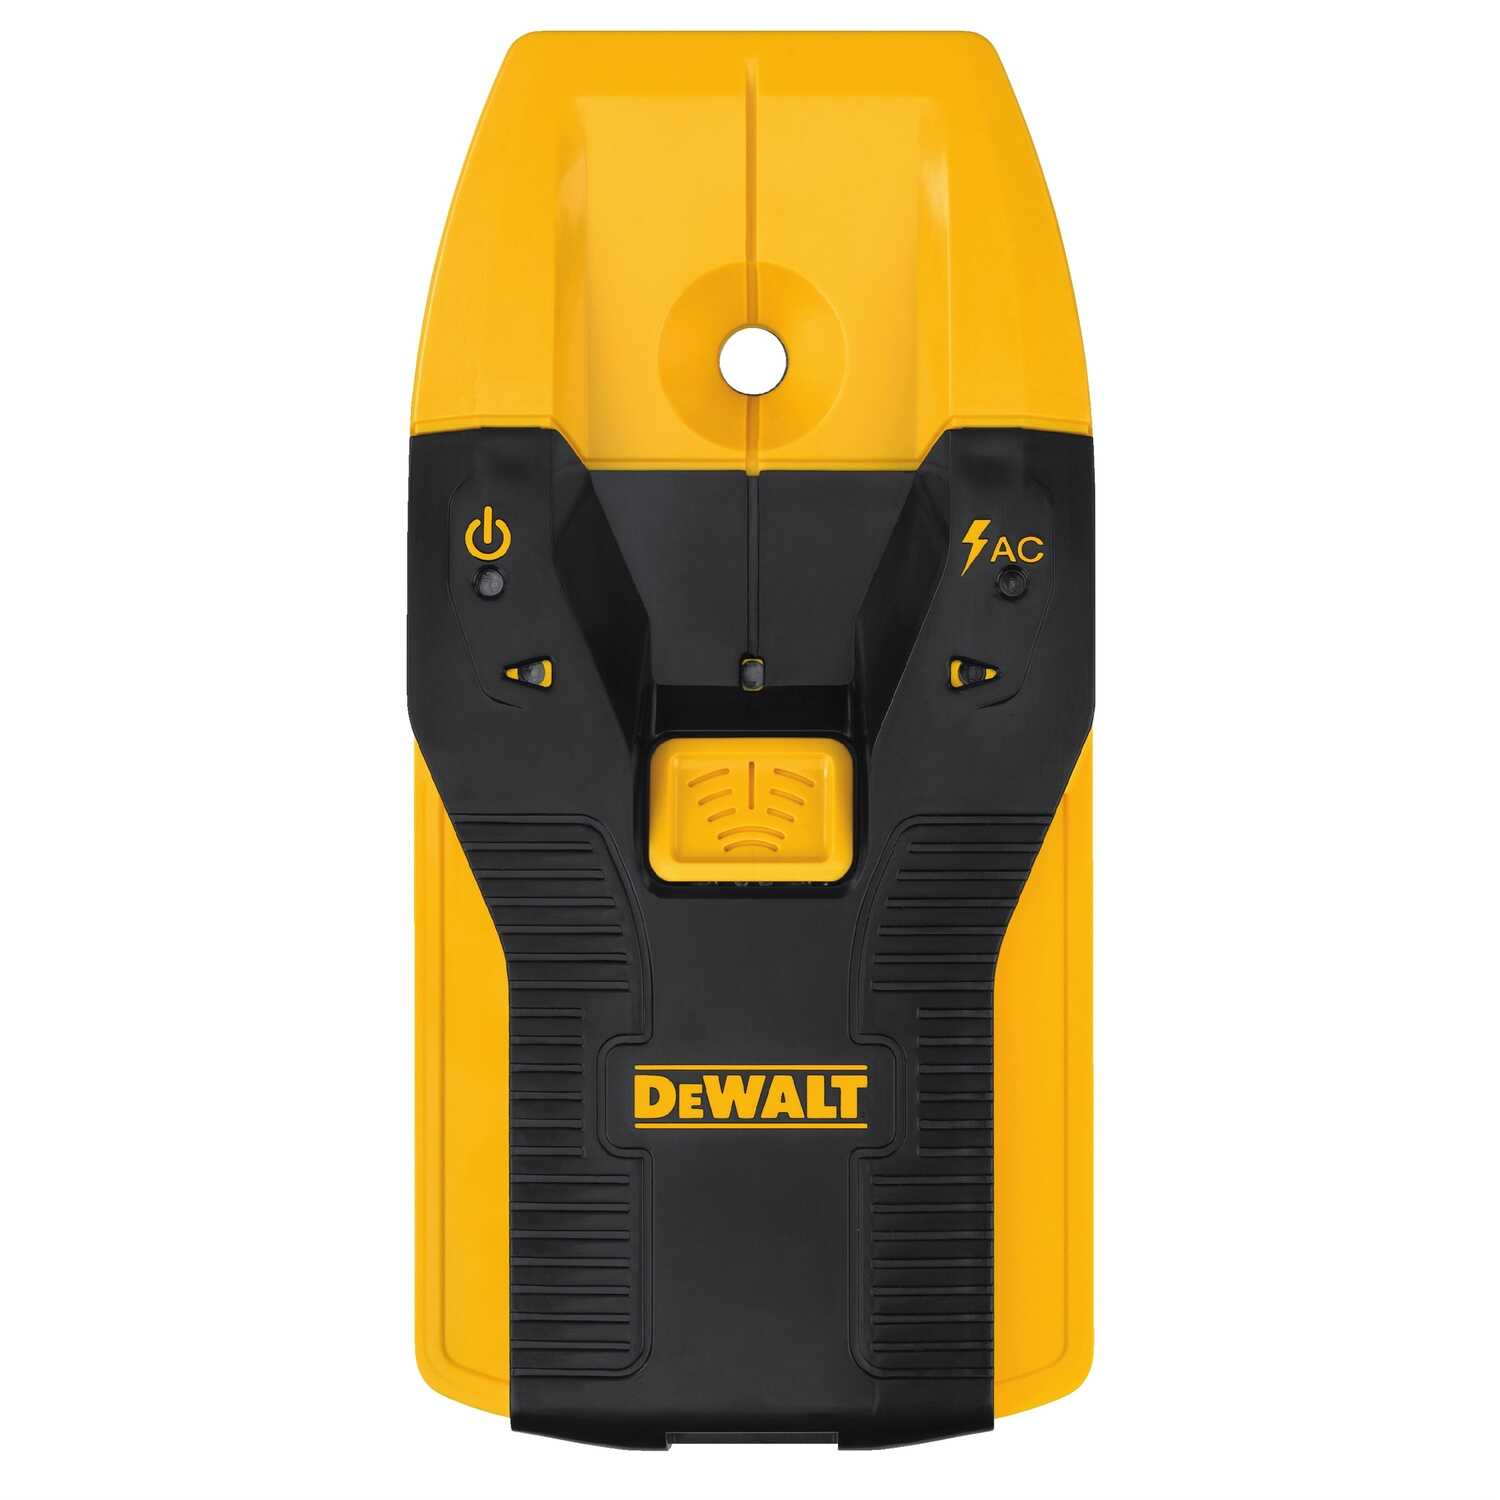 DeWalt  6.3 in. L x 4.2 in. W Stud Finder  3/4 in. 1 pc.